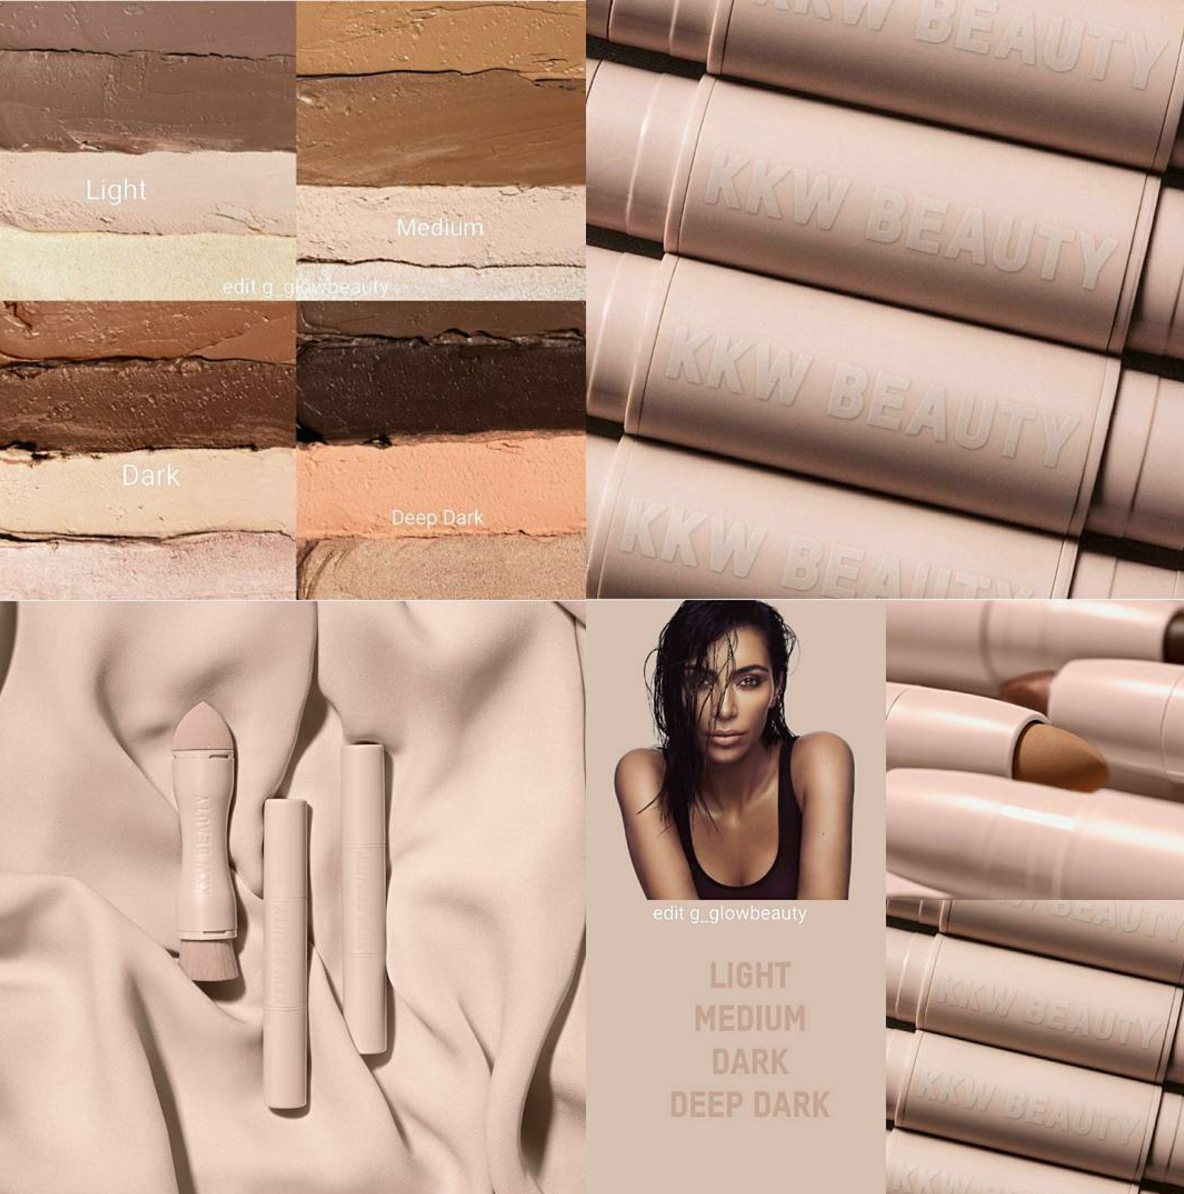 KKW Beauty Contour and Highlight Kit